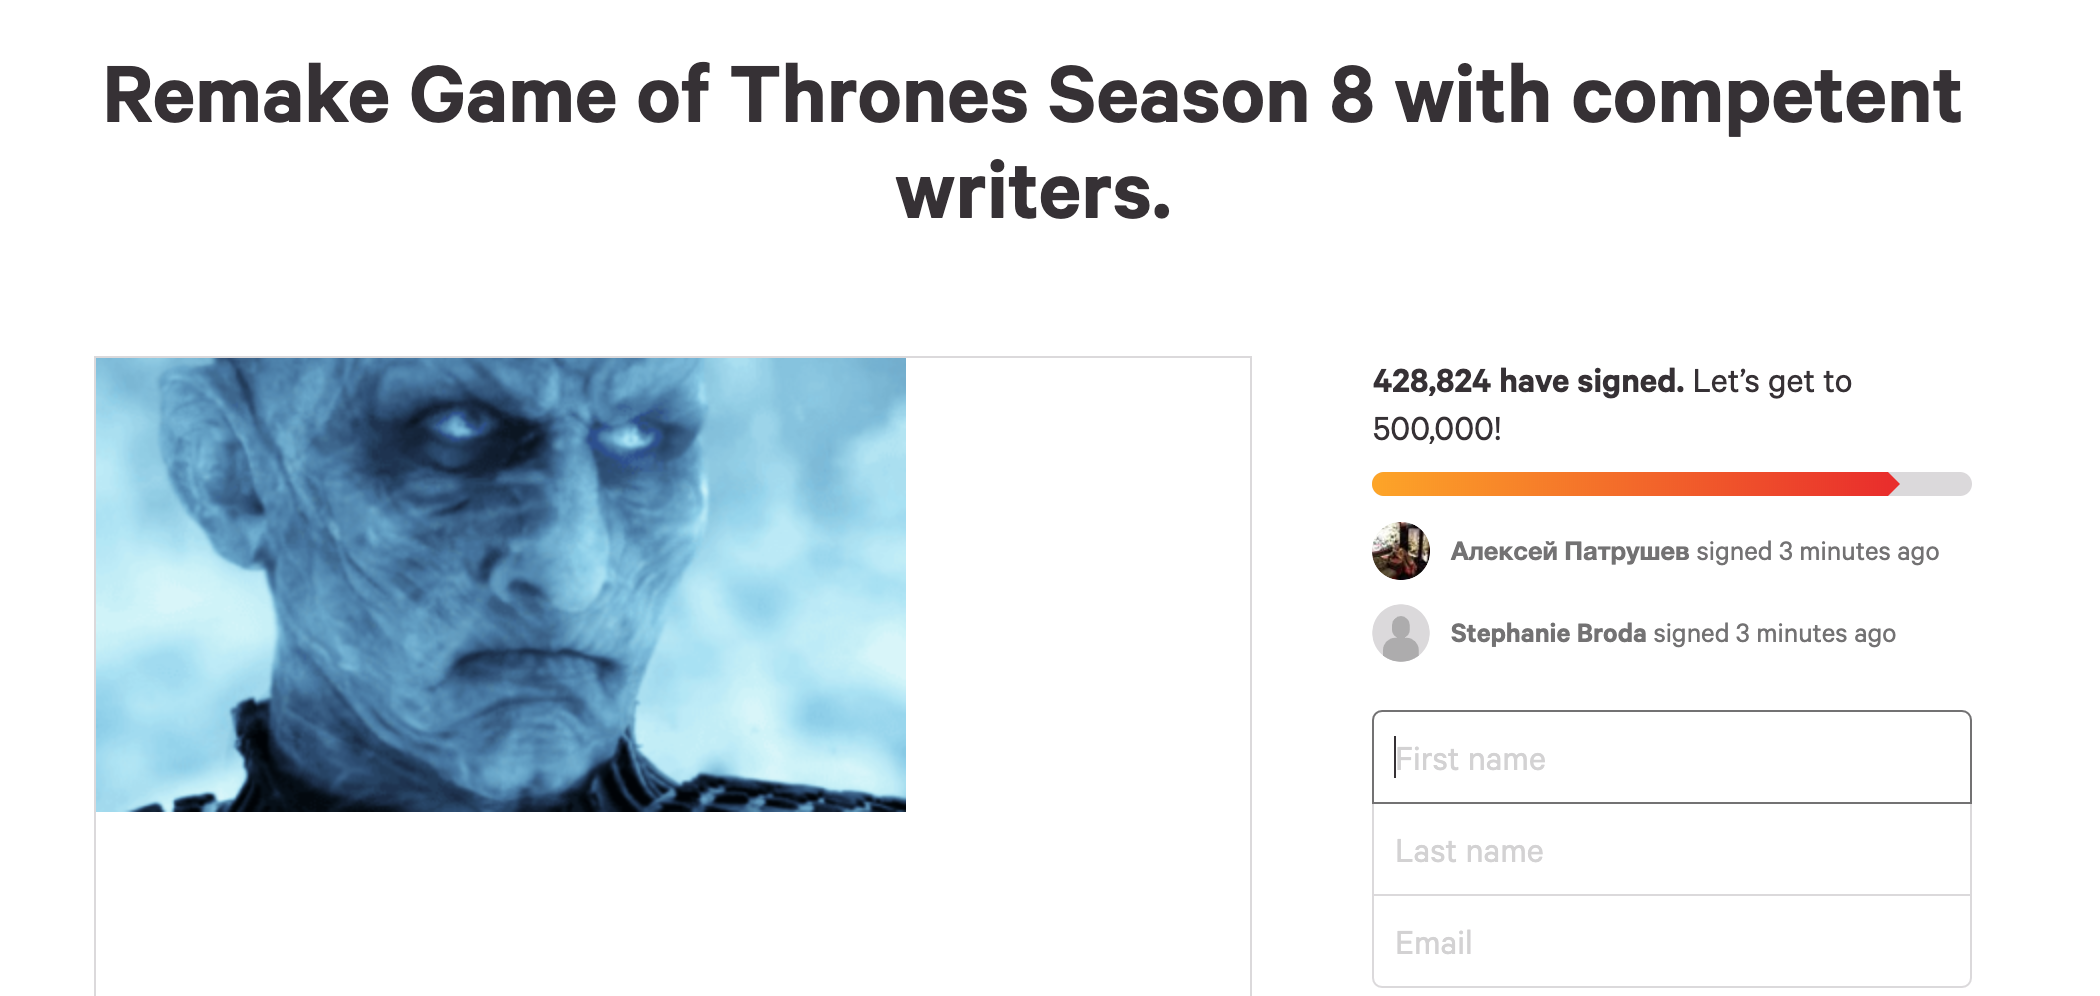 Petition To Remake Game Of Thrones Last Season Reaches Over